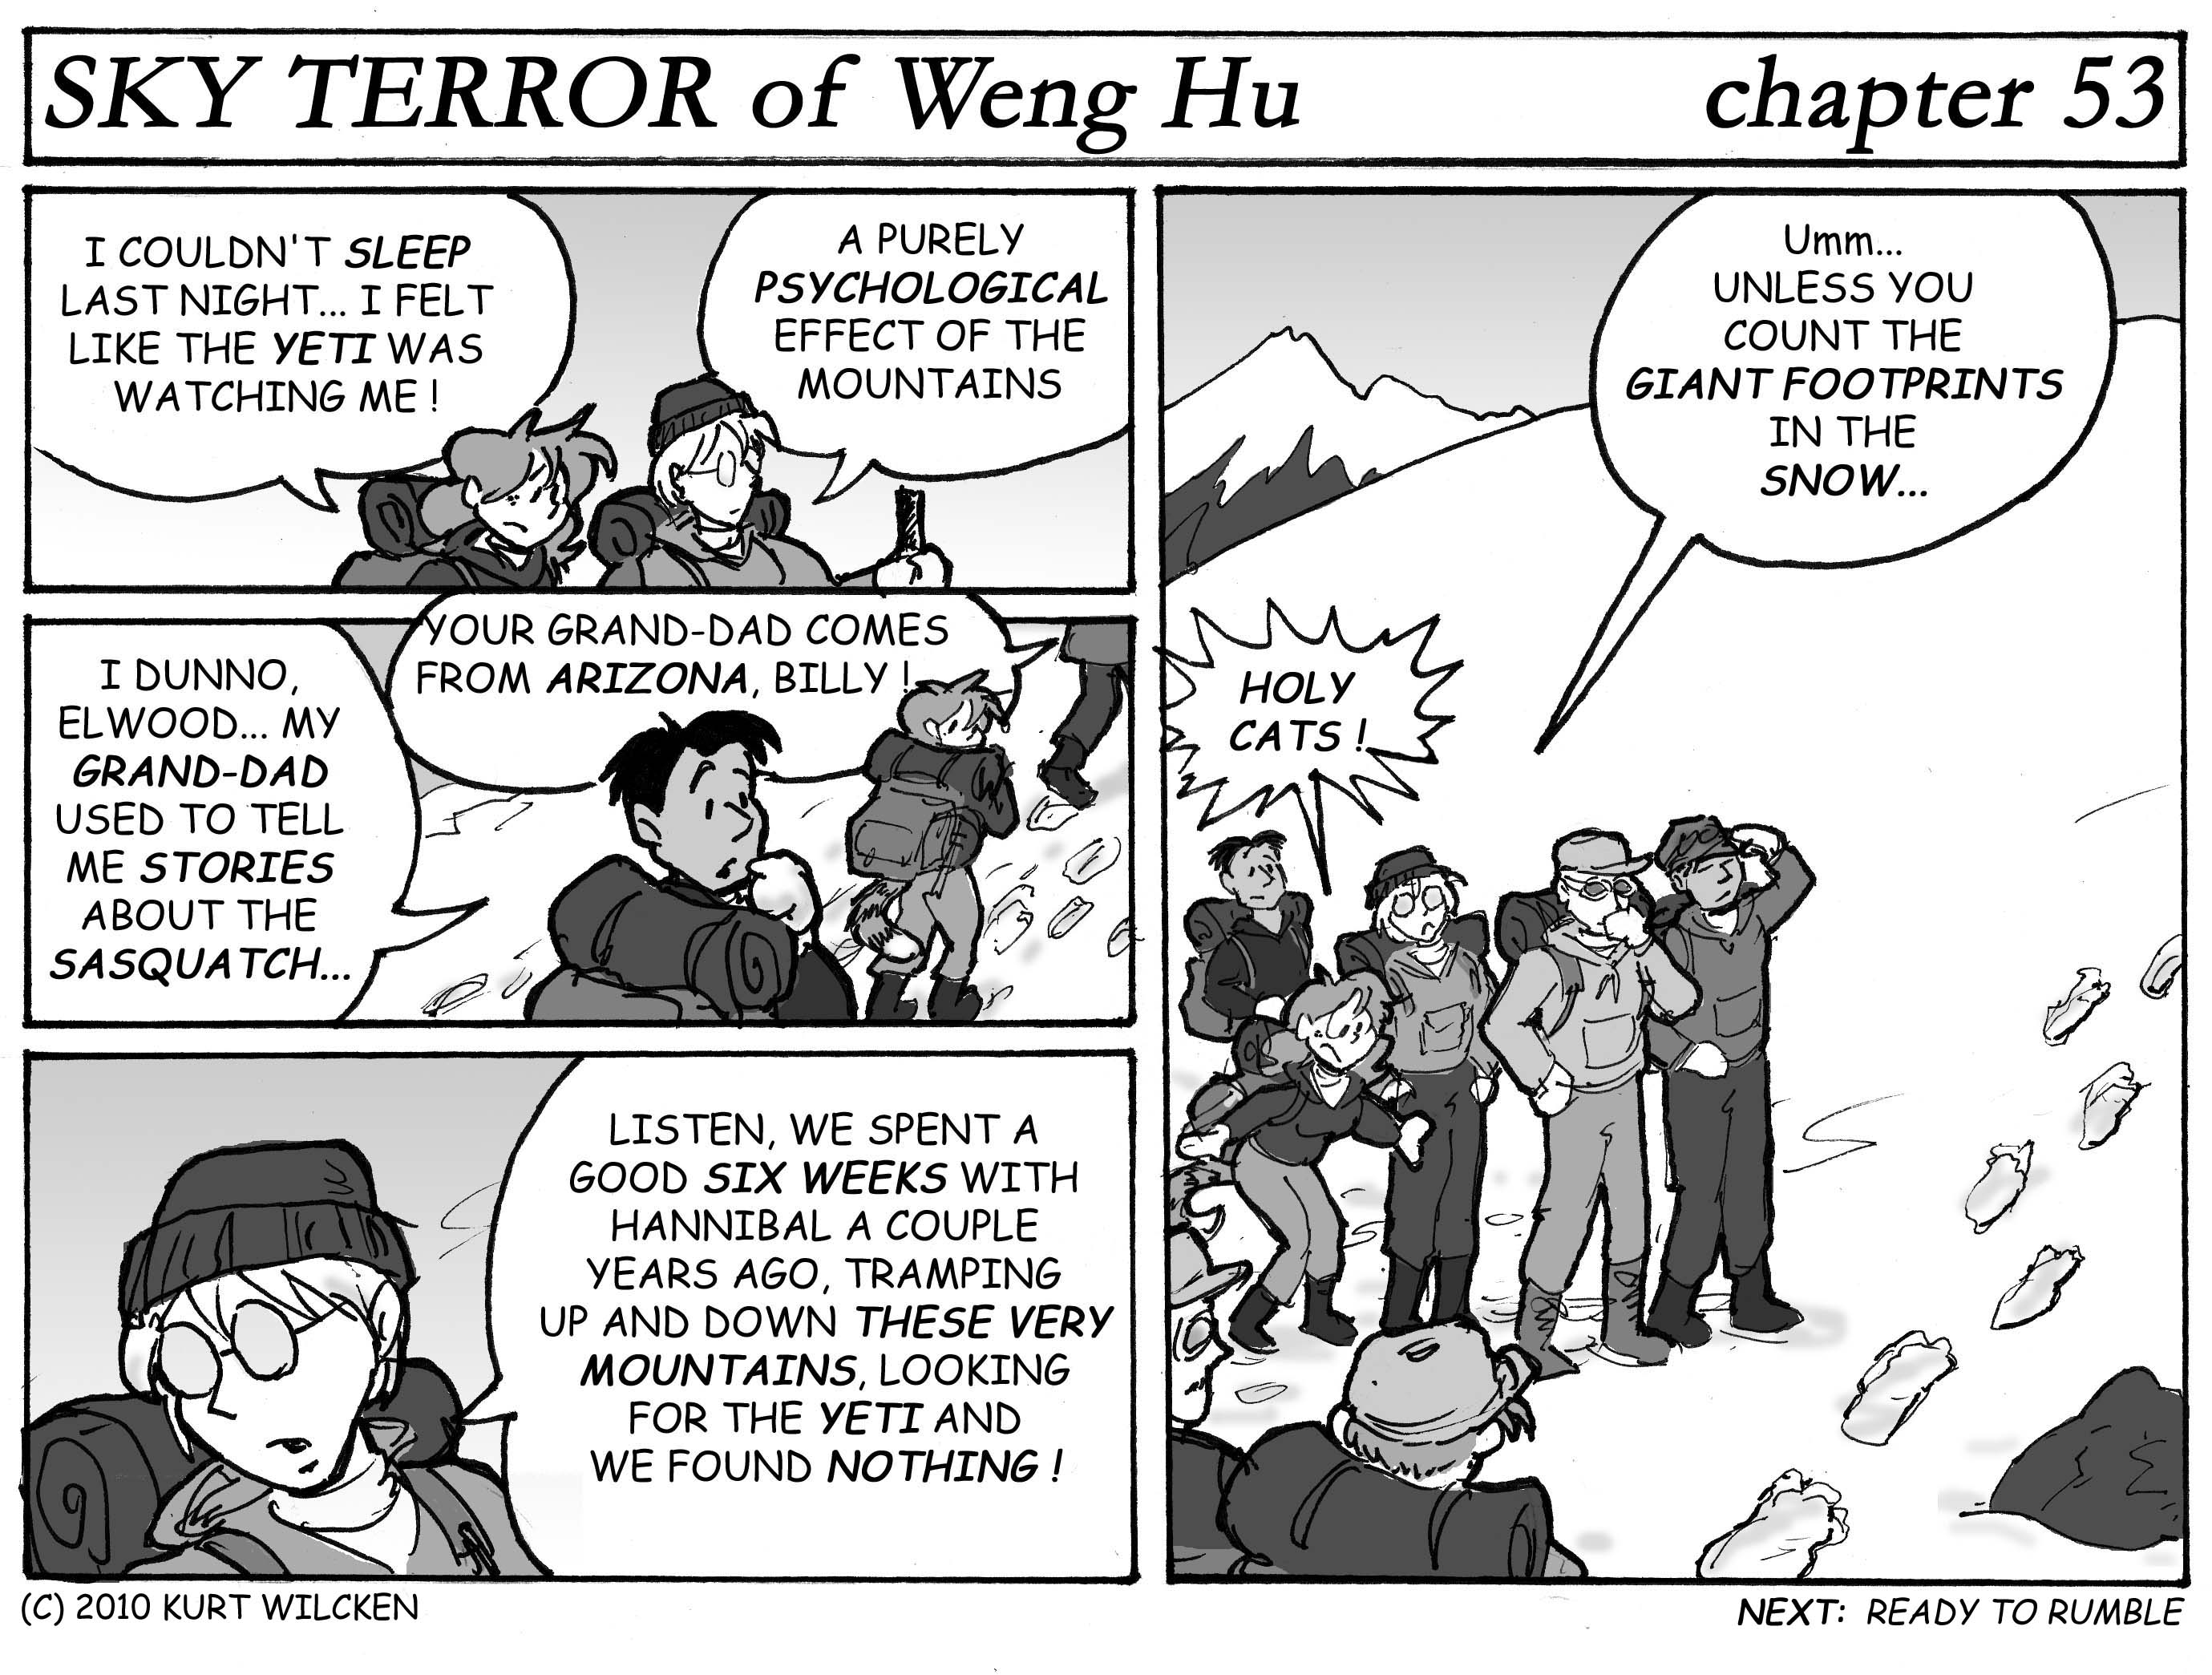 SKY TERROR of Weng Hu:  Chapter 53 — Making Tracks